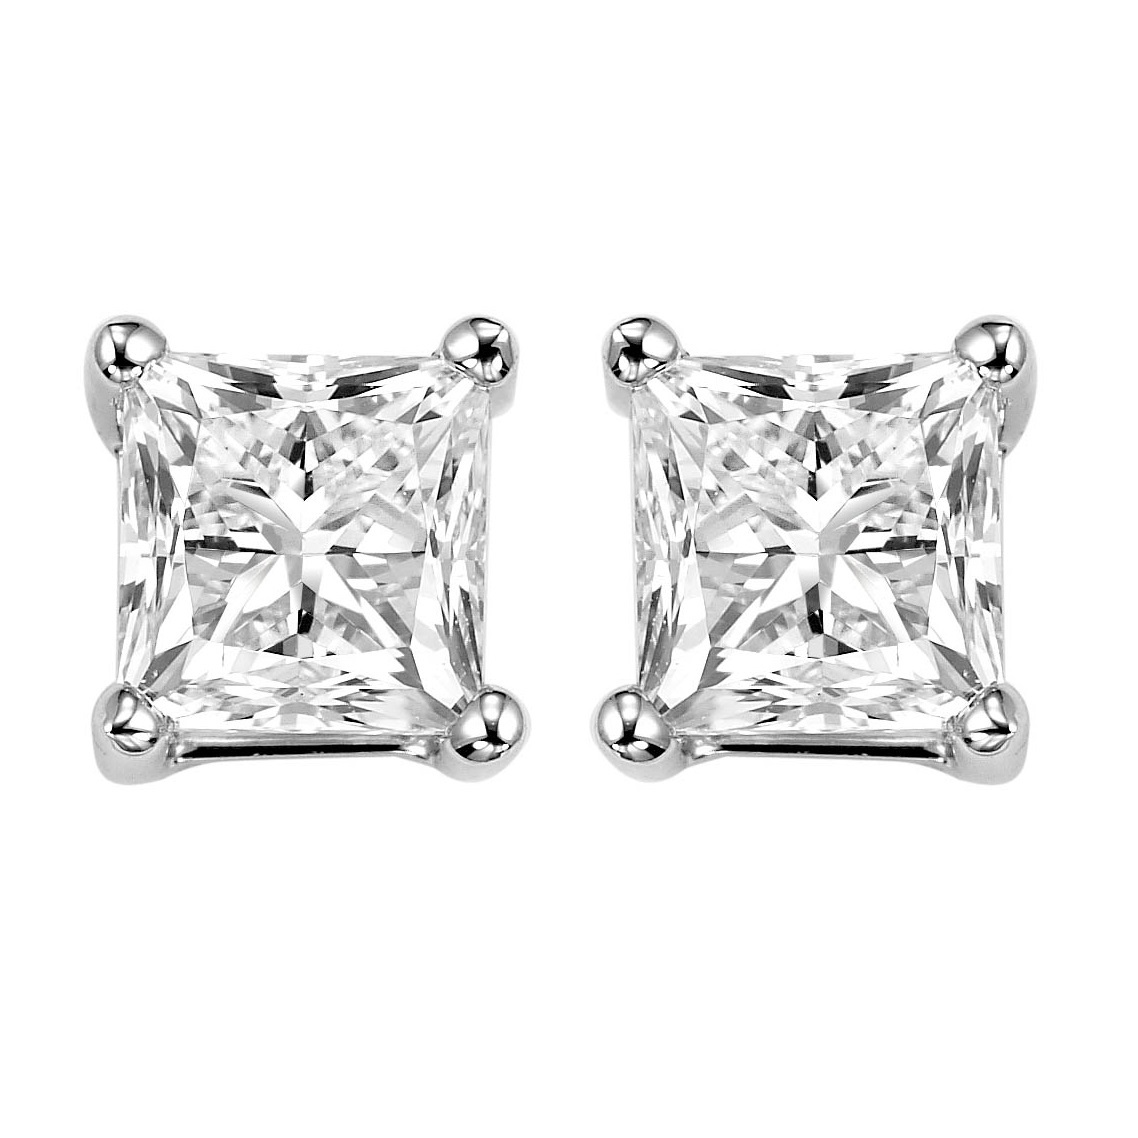 Princess Cut Diamond Studs in 14K White Gold (1 1/2 ct. tw.) I1/I2 - G/H Moseley Diamond Showcase Inc Columbia, SC